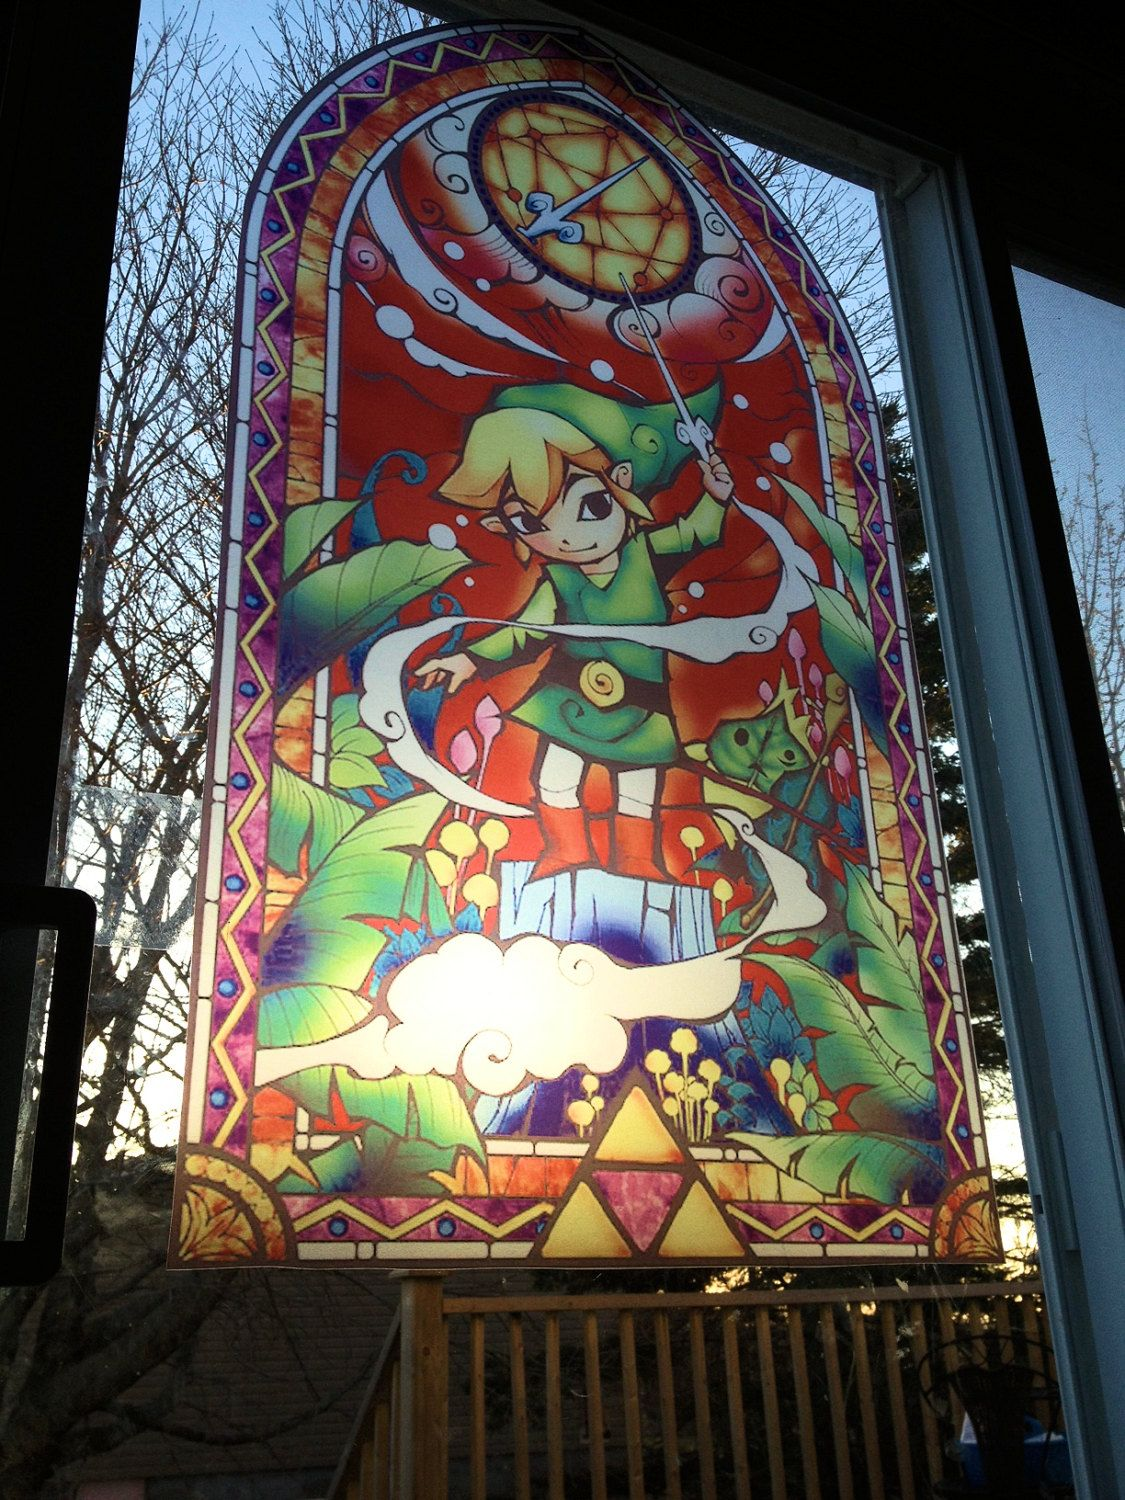 Stained glass imitation zelda wind waker x inch window glass